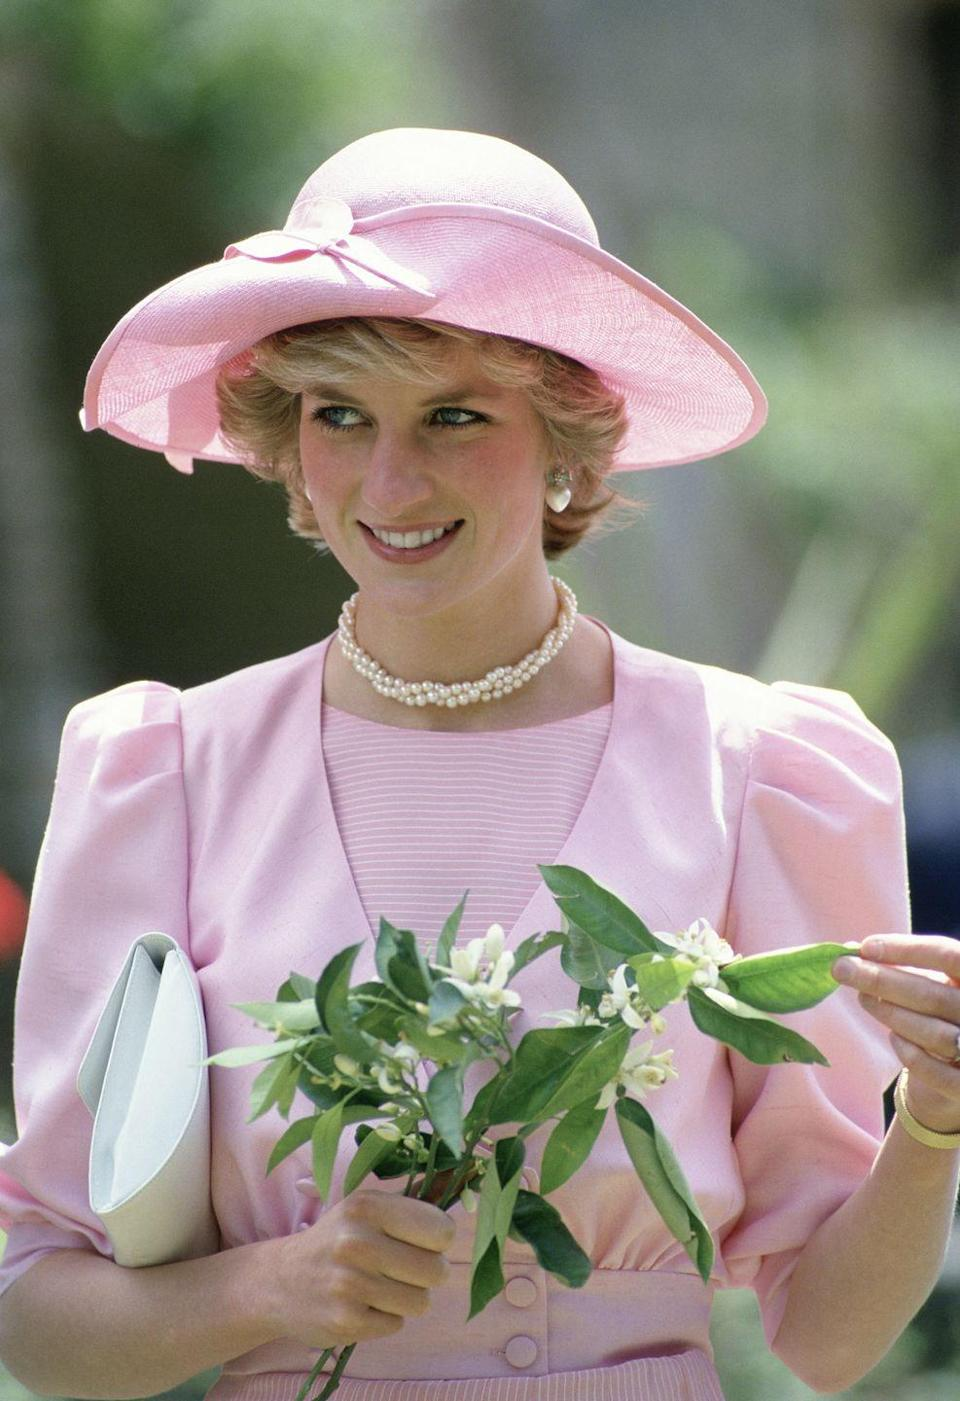 <p>On a trip to Sicily in 1985, Princess Diana looked like the proverbial English rose in a rosy suit and hat.</p>